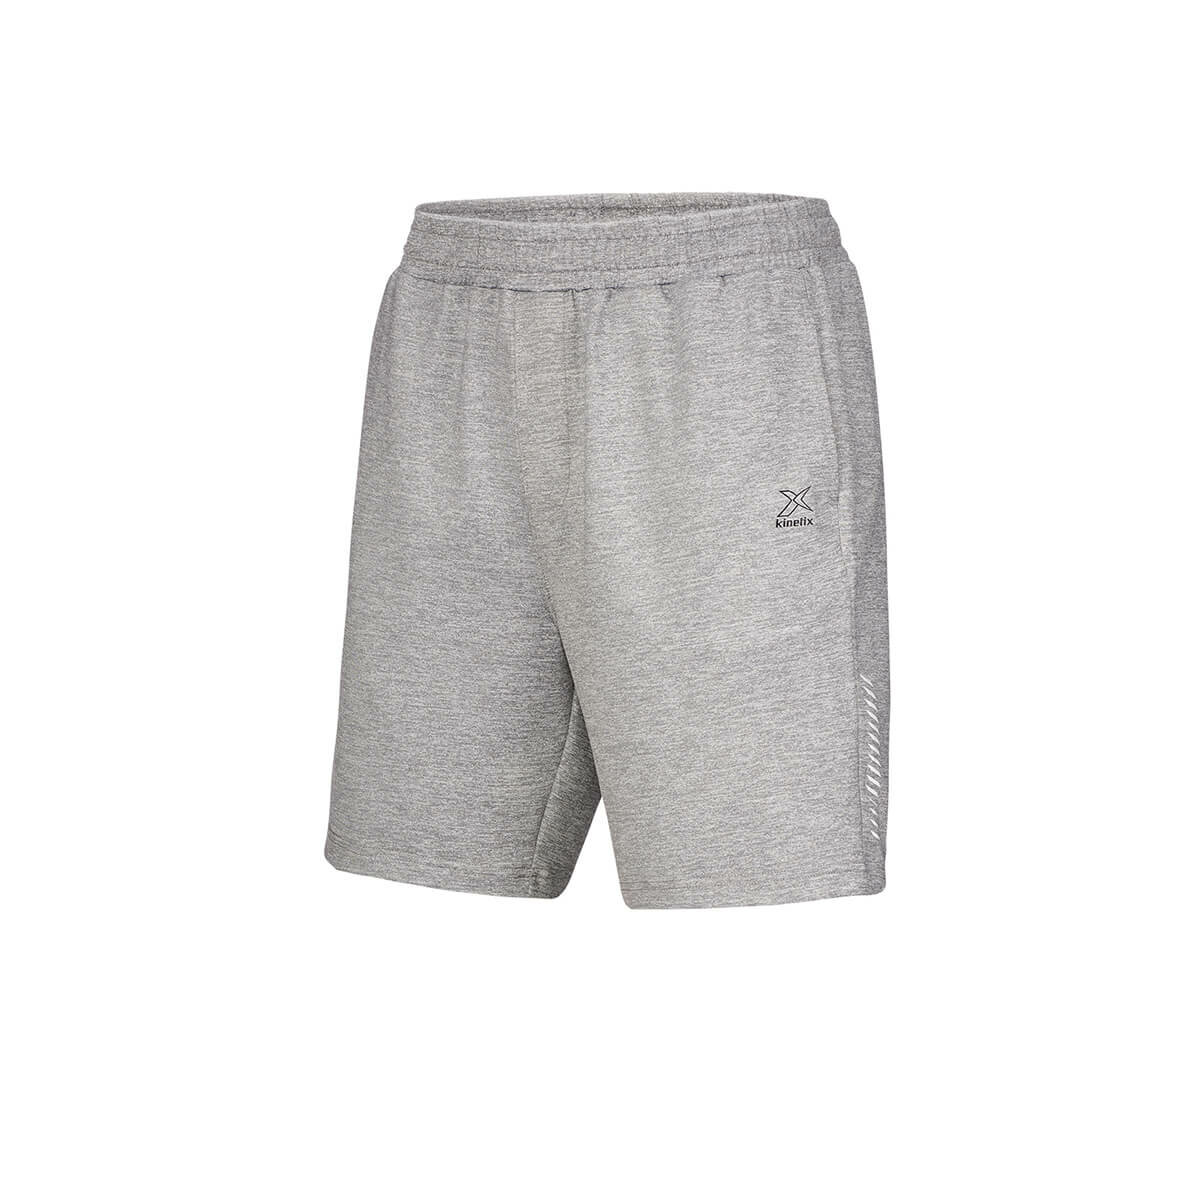 FLO UPTOWN SHORT Mel Gray Male Shorts KINETIX